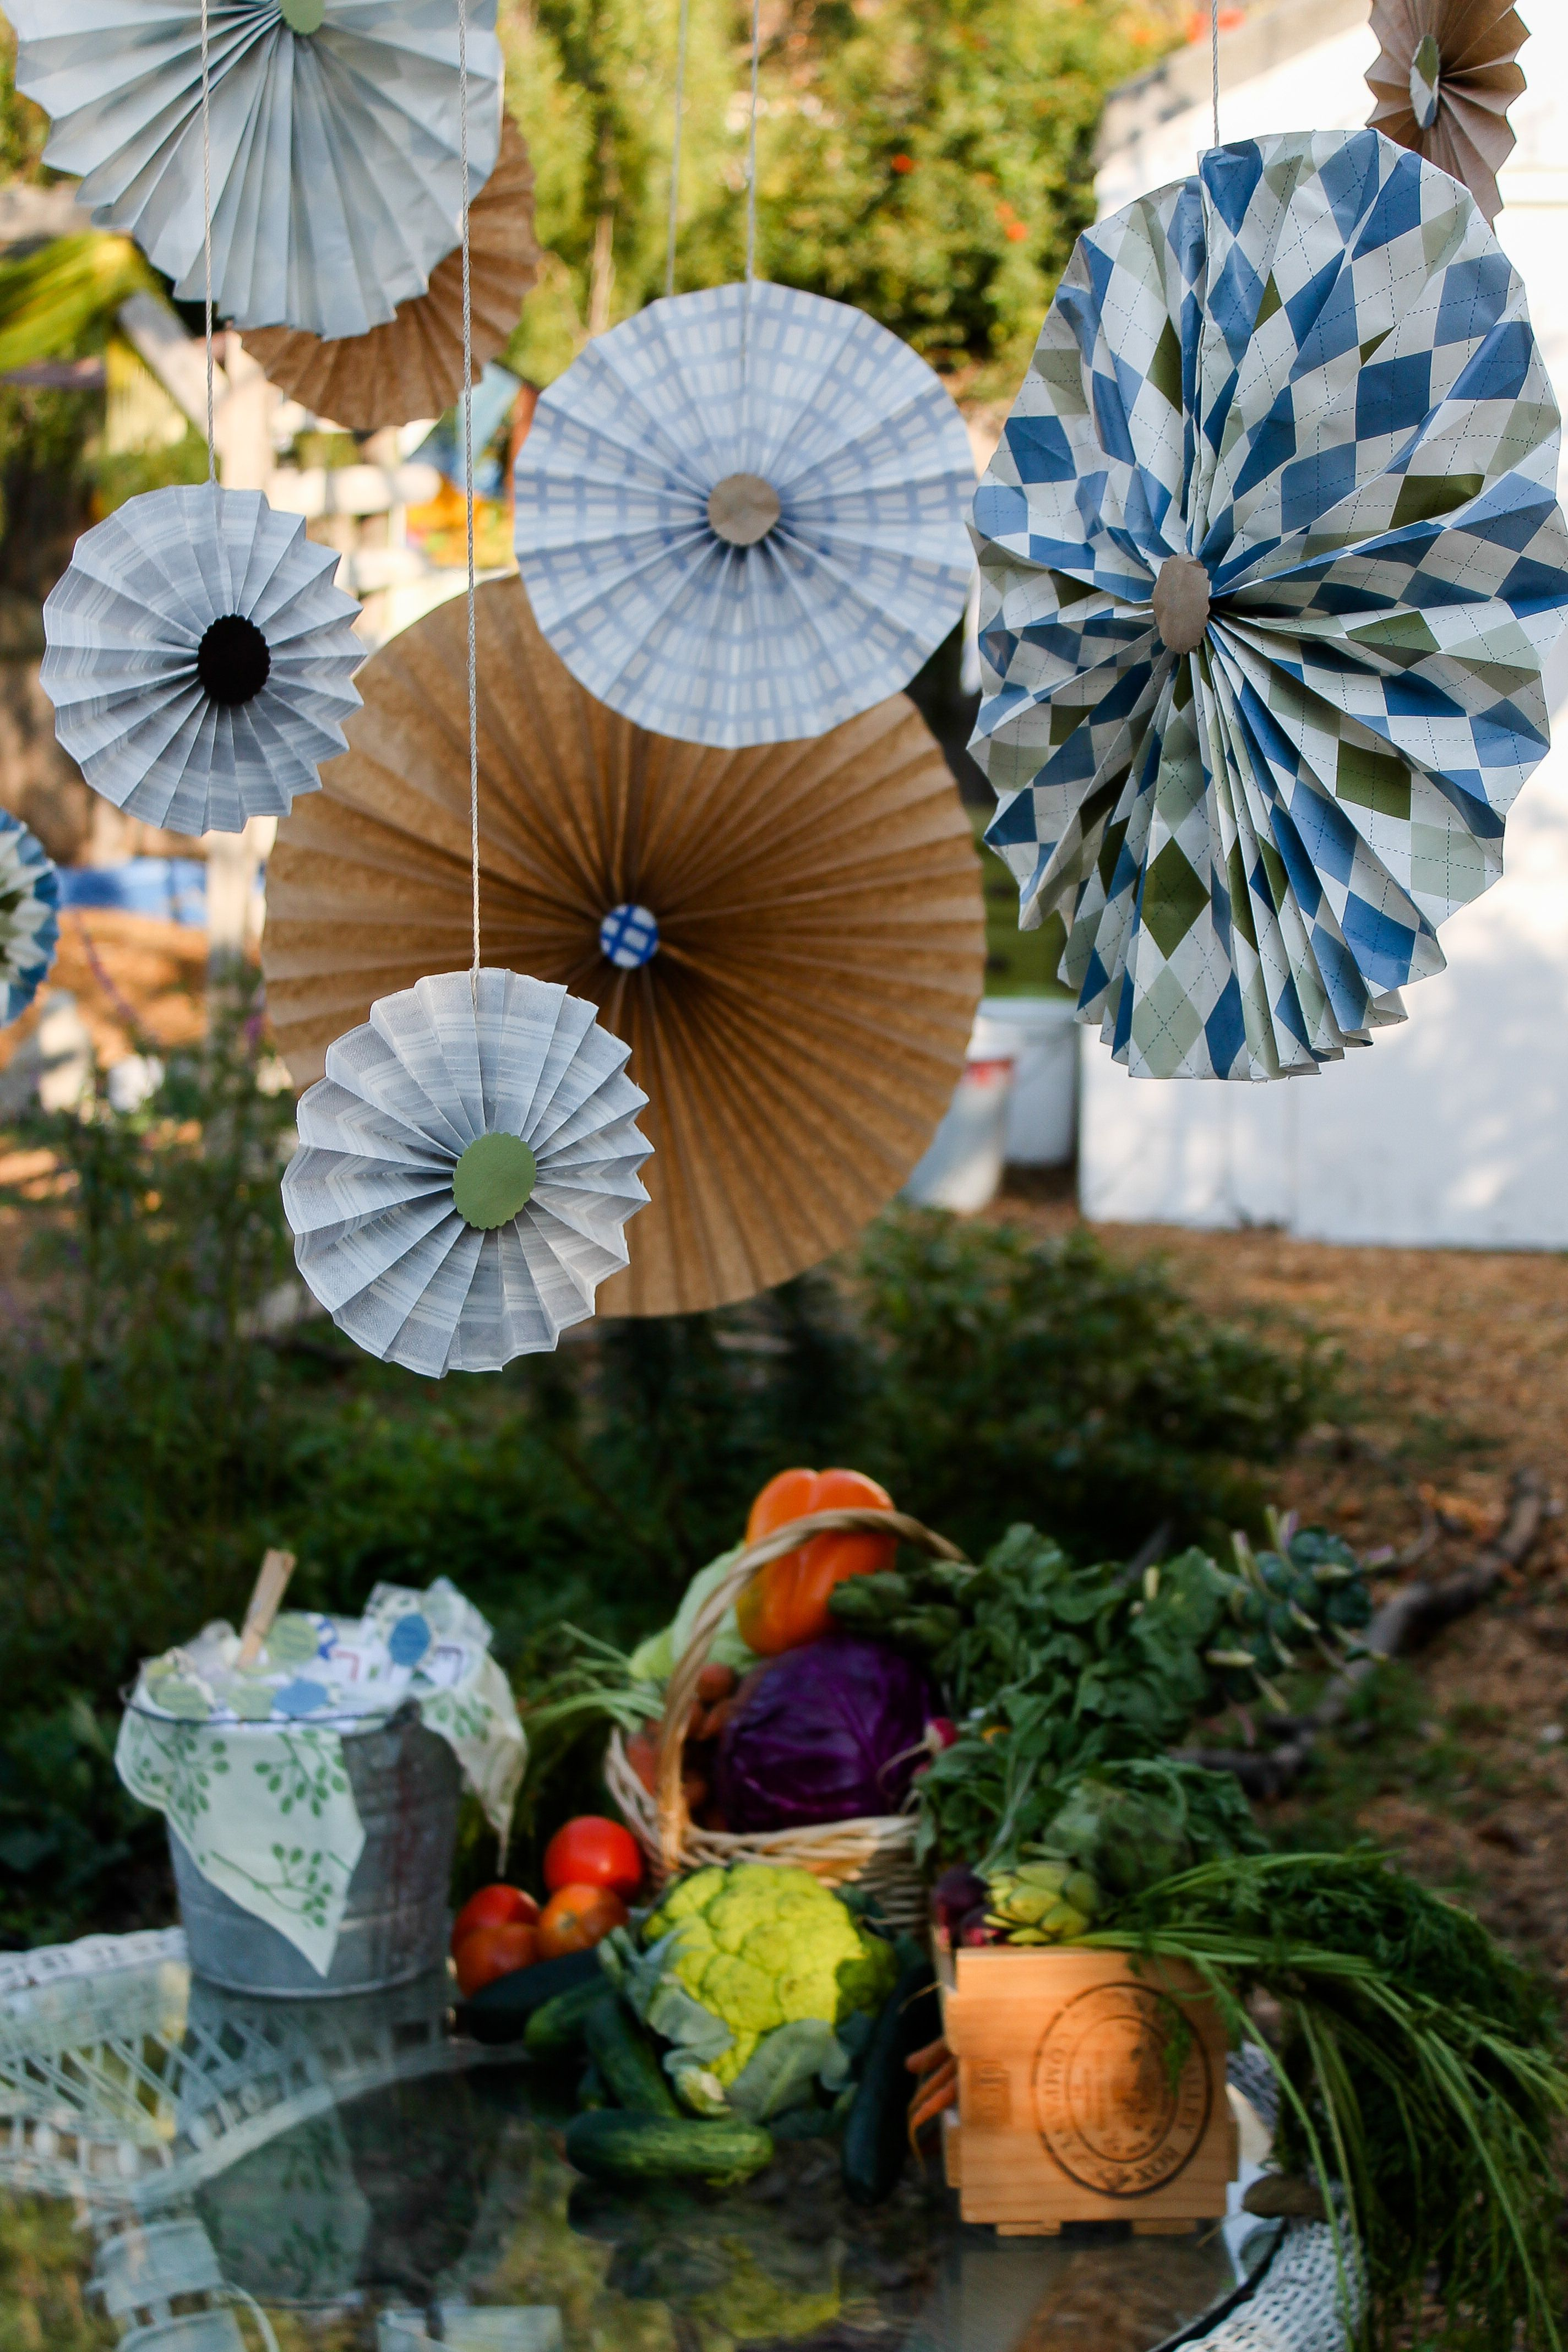 Garden decor for baby shower  DIY colorful accordion paper flowers Boy baby shower peter rabbit